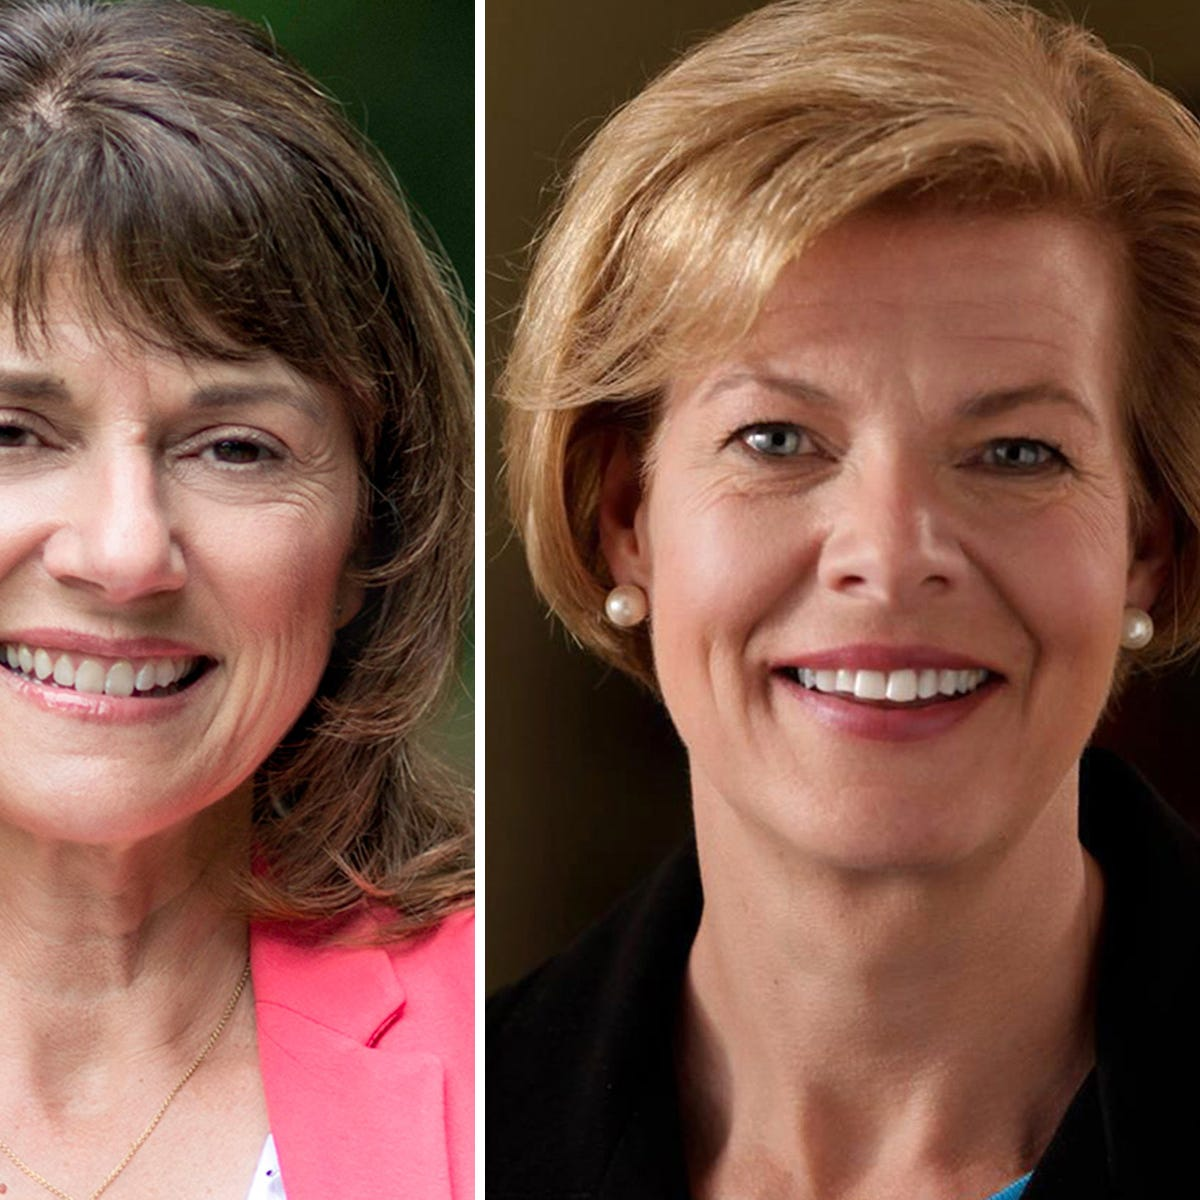 Wisconsin U.S. Senate race: Leah Vukmir, Tammy Baldwin open final stretch of campaigning